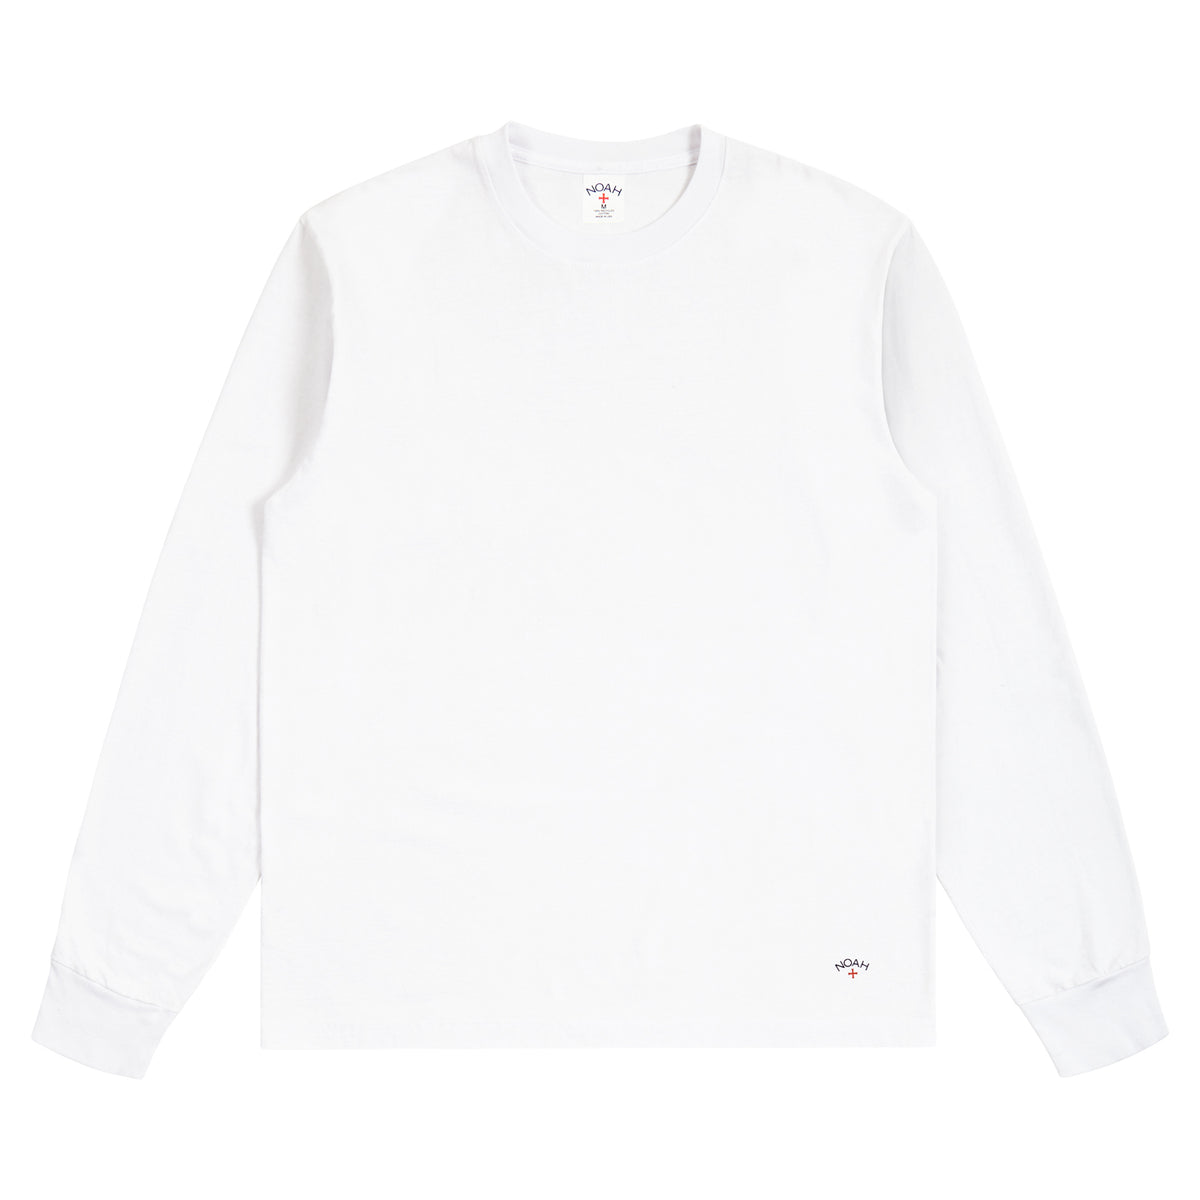 Recycled Cotton Long Sleeve Tee